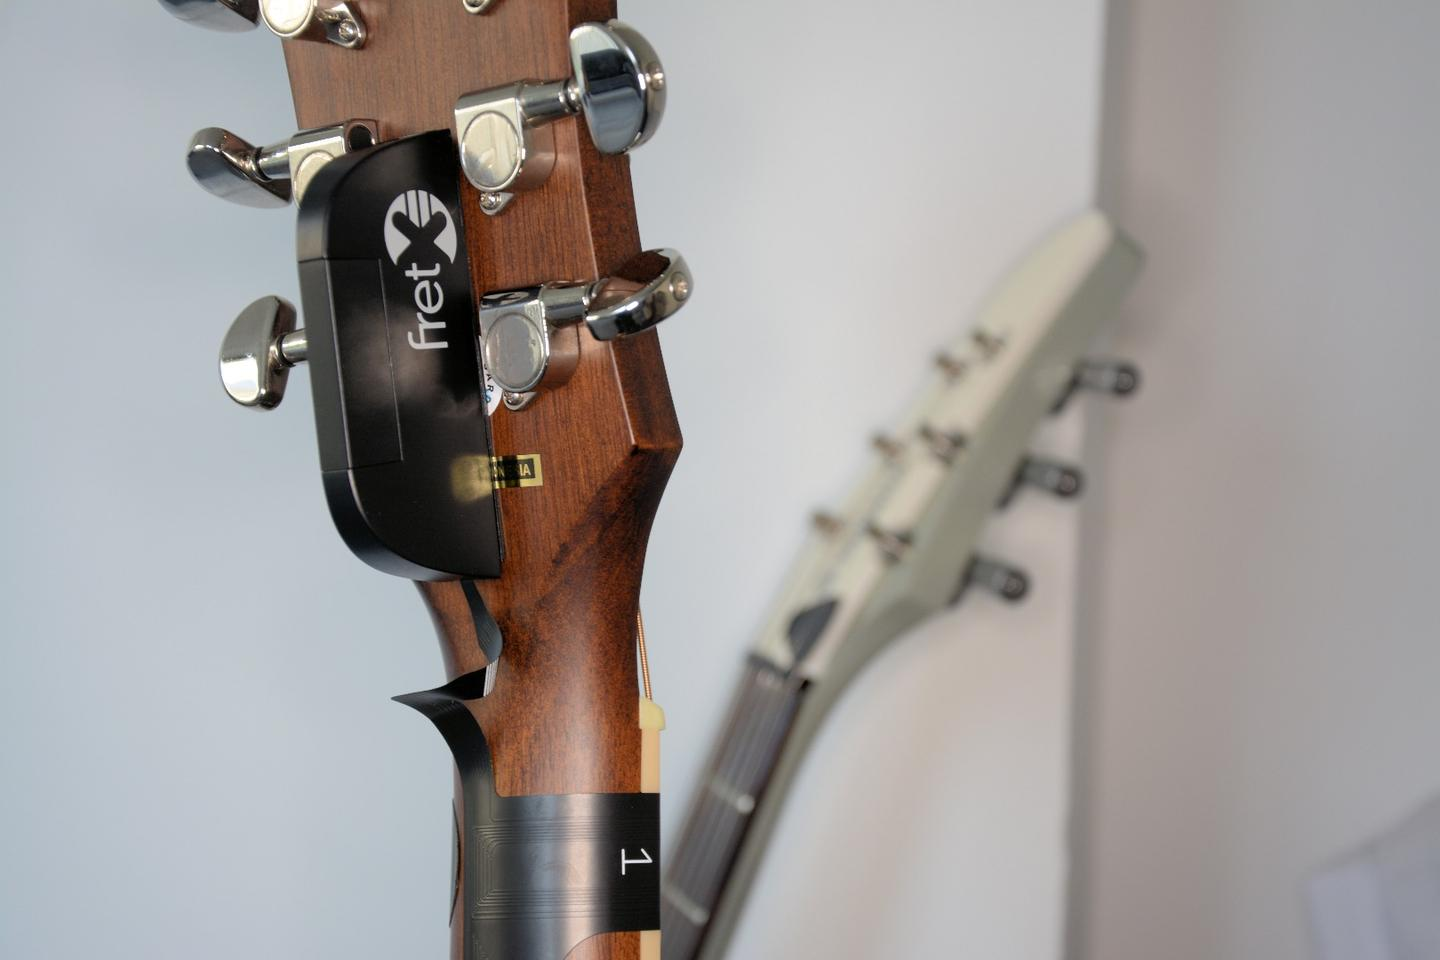 The FretX control box sits at the back of the headstock, in this case between the tuning machines of our dreadnought test mule